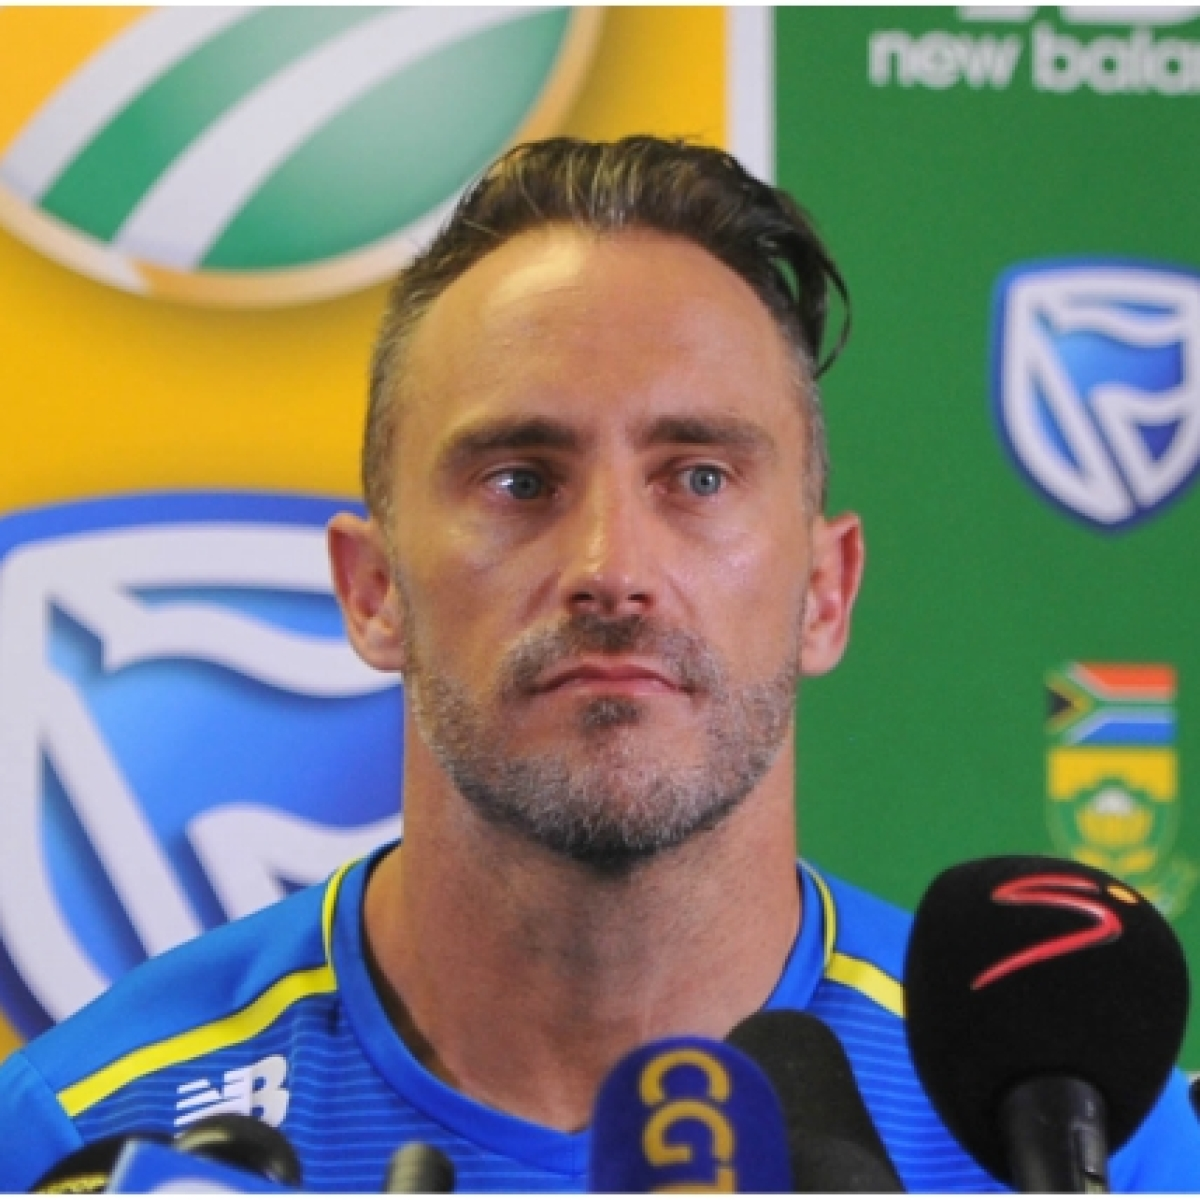 Faf du Plessis praises MS Dhoni's gut feeling, says he is a very 'instinctive keeper'